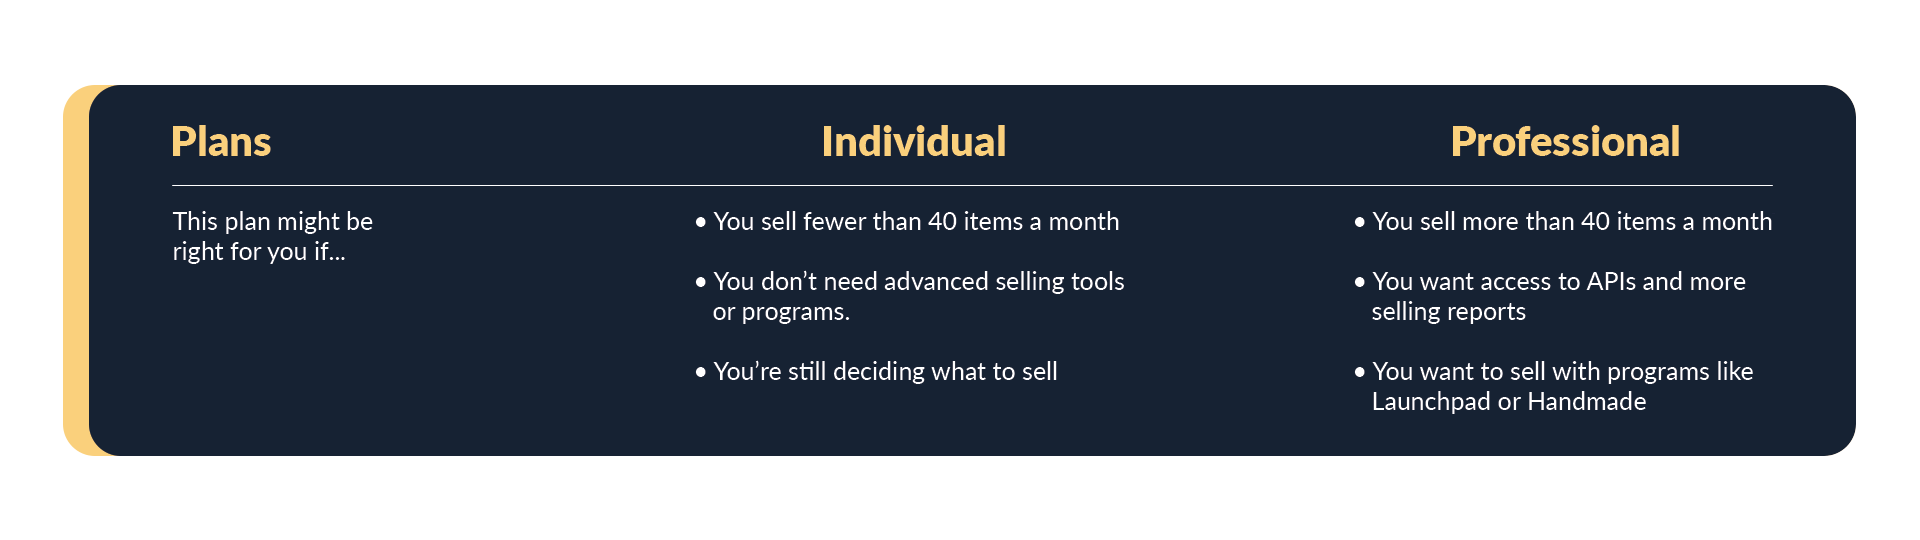 Compare and contrast of the individual vs professional plans on Amazon Seller Central.